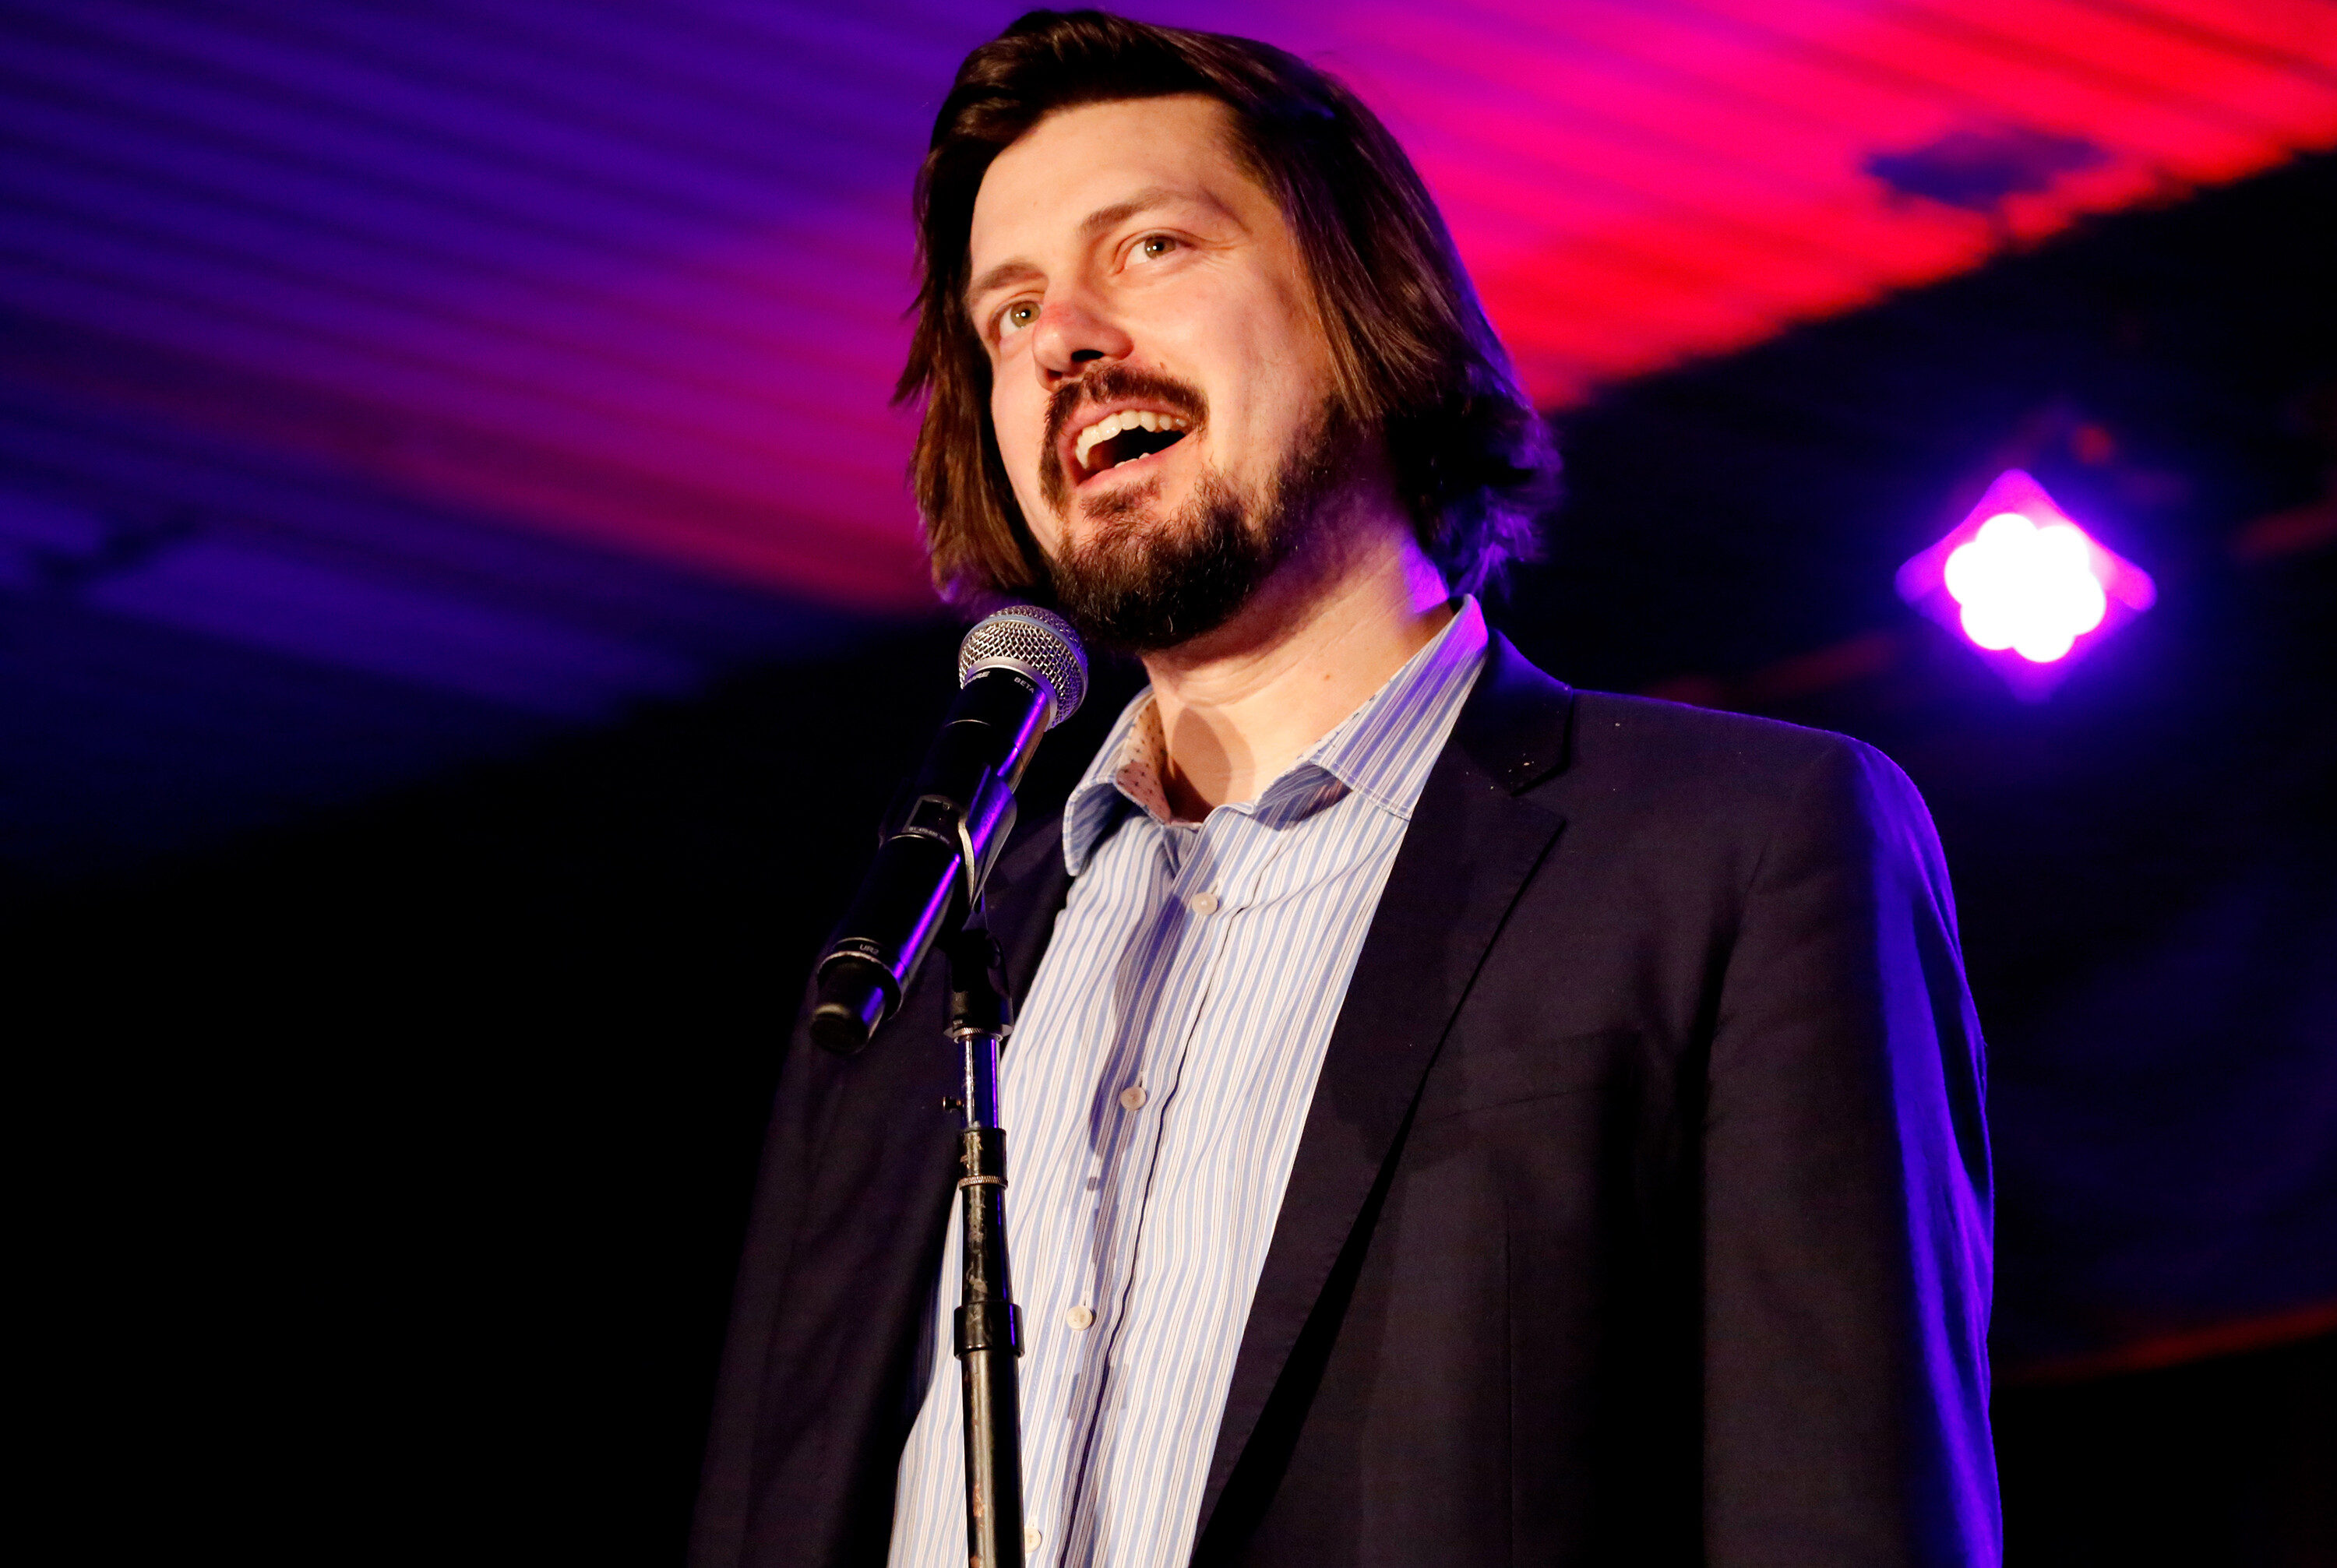 Trevor Moore, comedian and co-founder of The Whitest Kids U Know, dead at 41